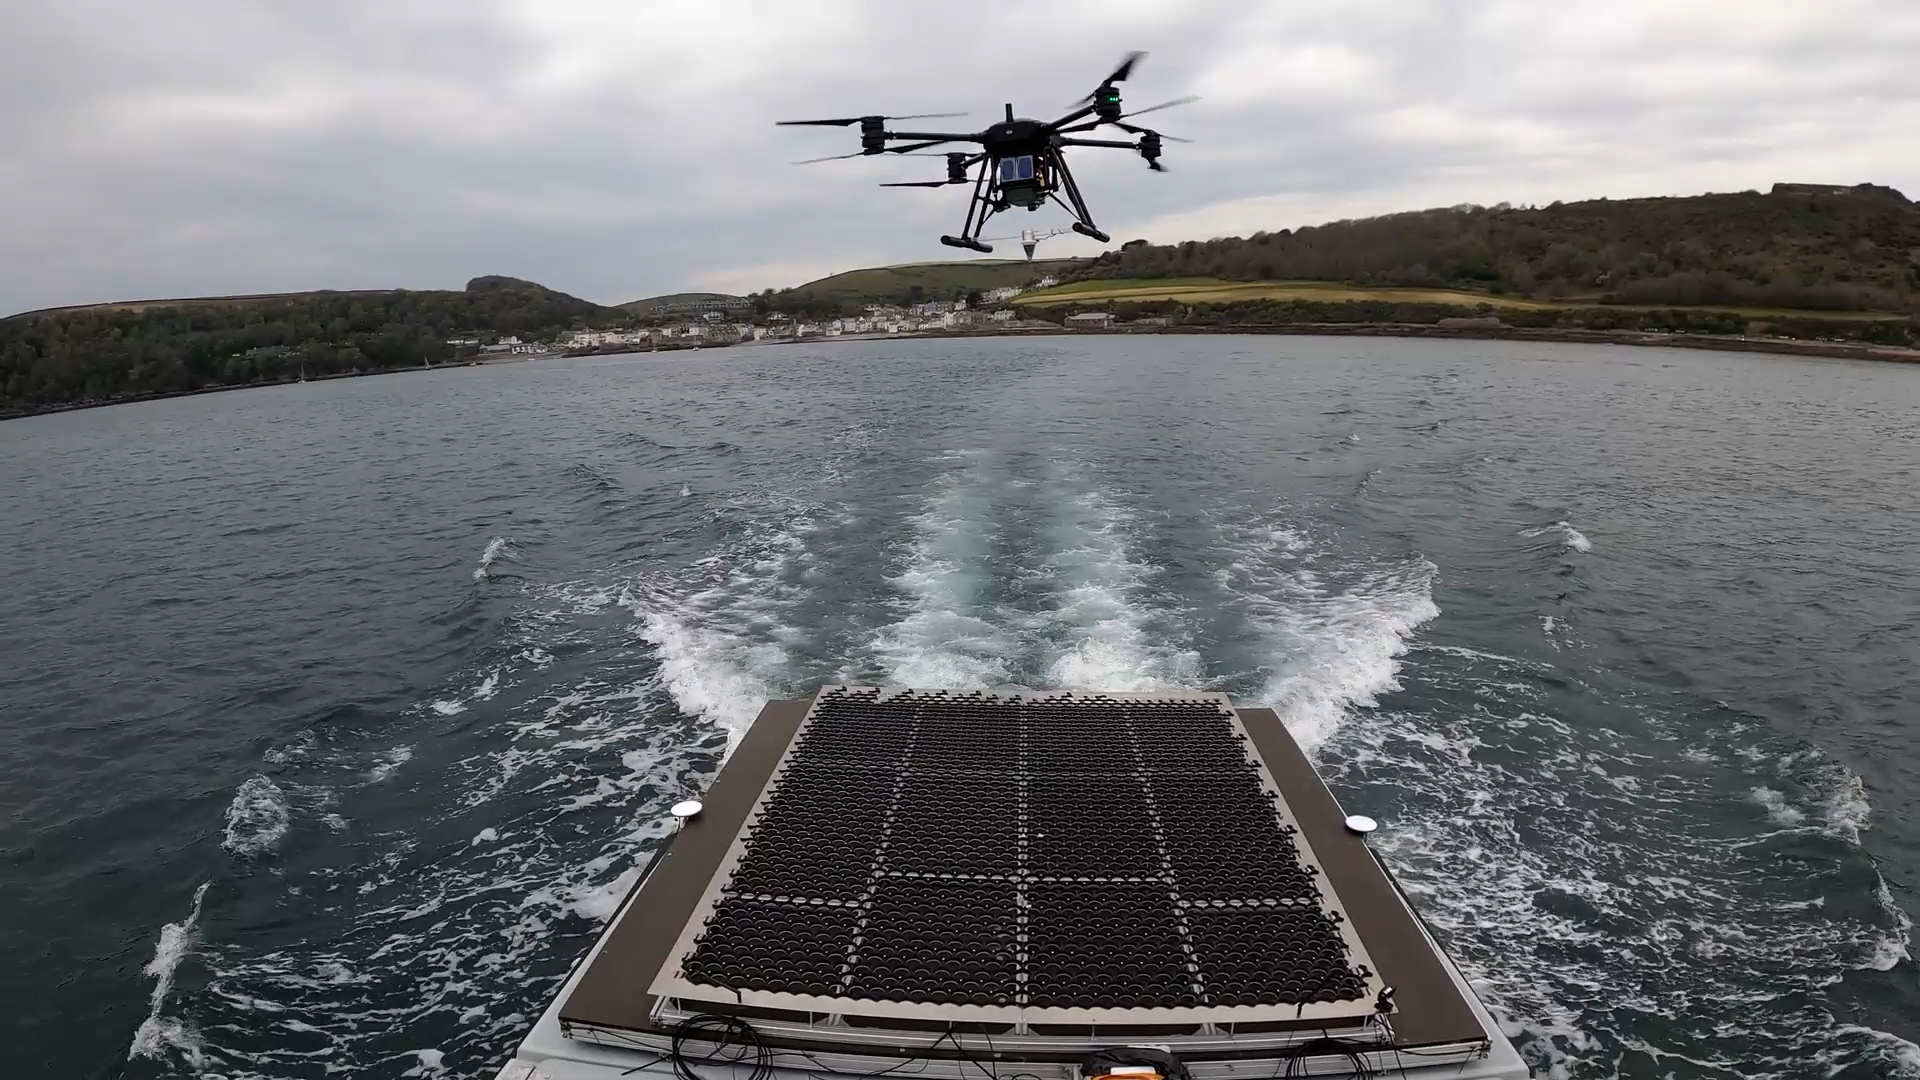 Drone launched from Thales' Halcyon vessel as part of MIMRee trials